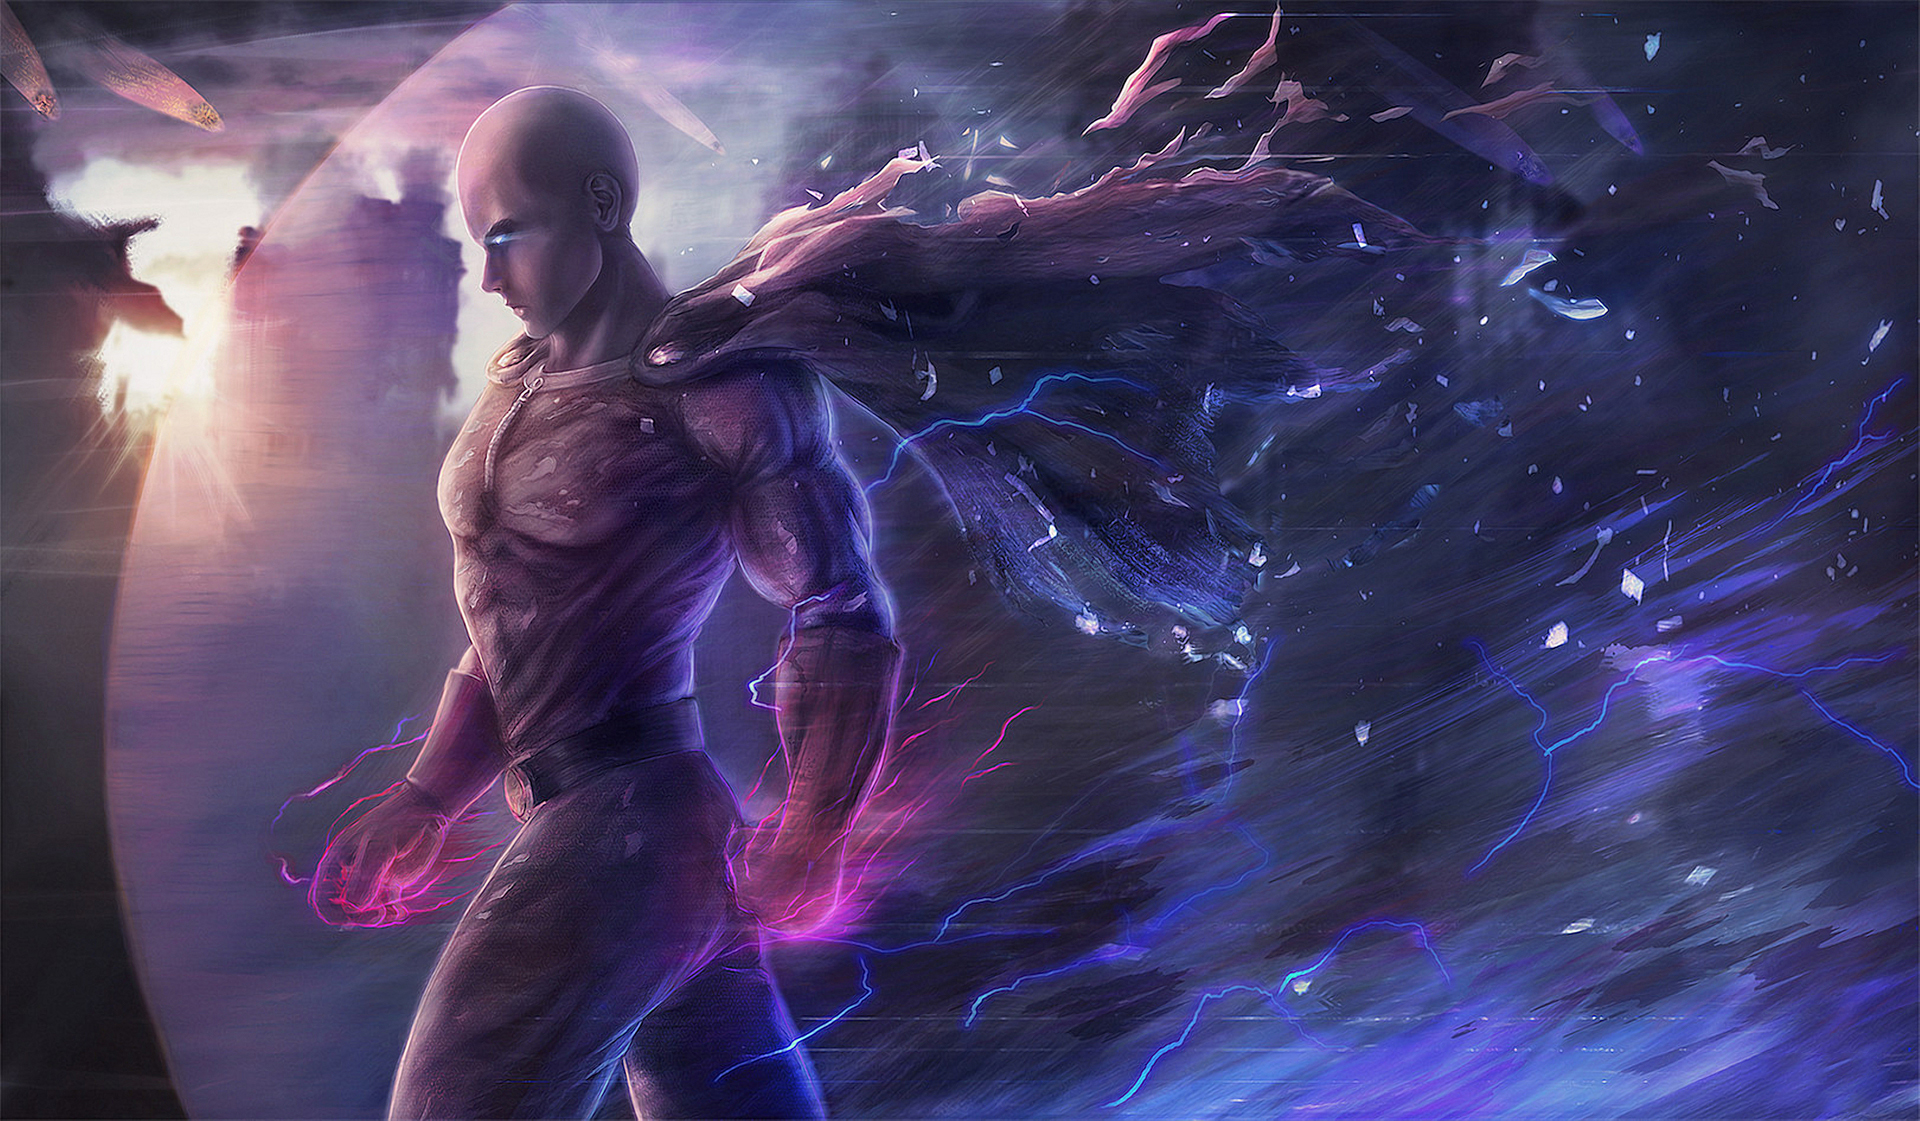 Wallpaper Wide Hd Girl Saitama One Punch Man Hd Anime 4k Wallpapers Images